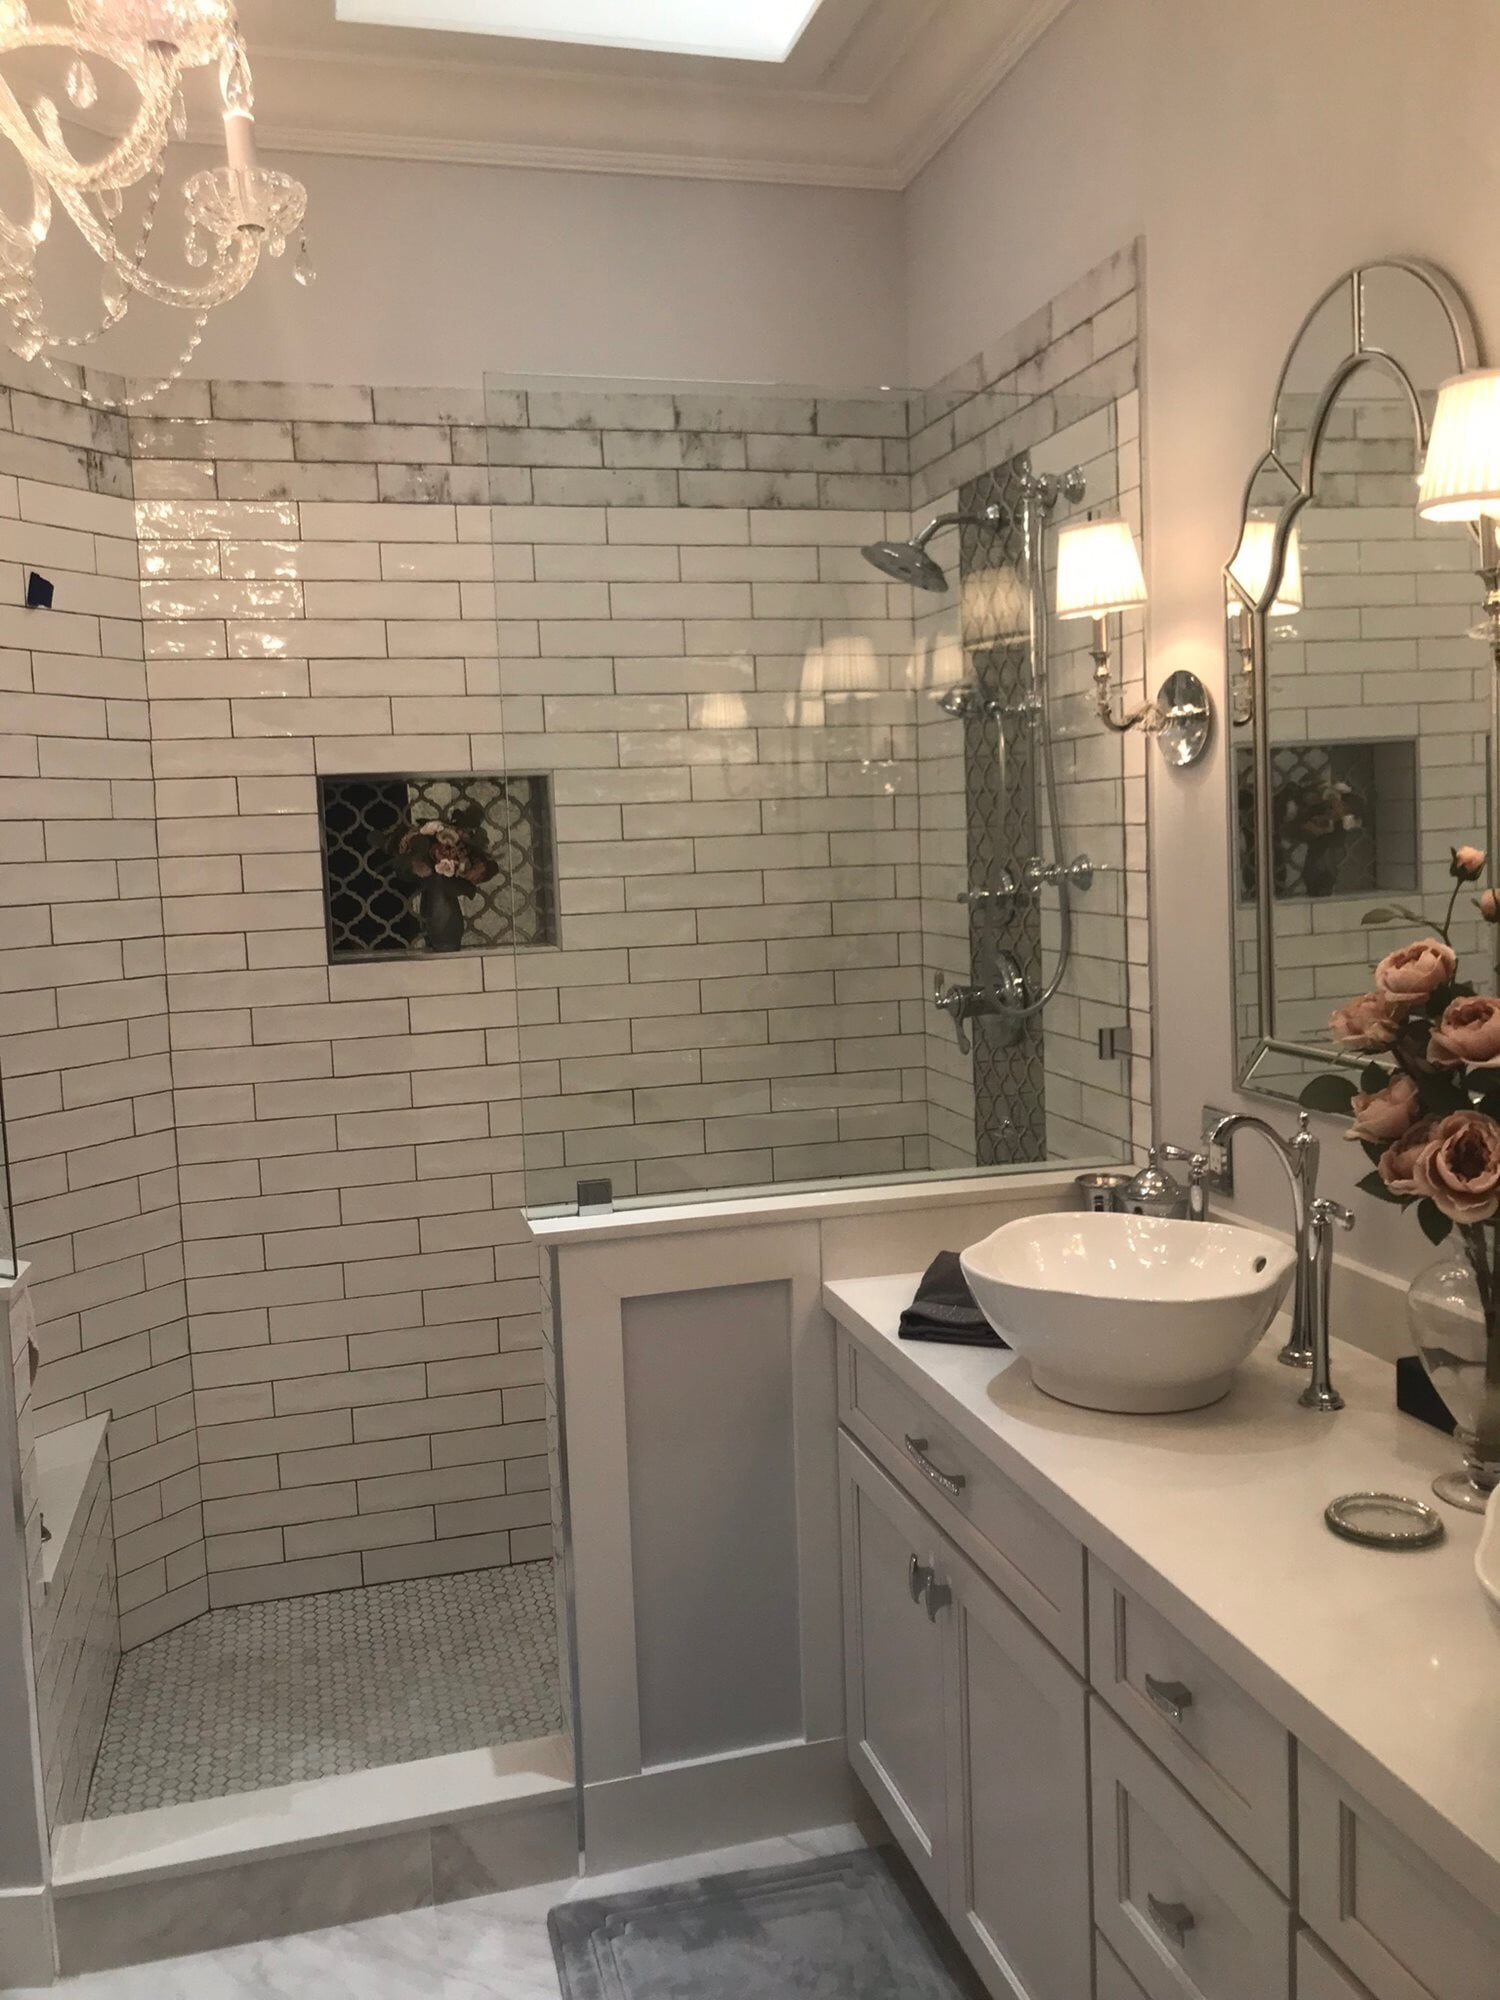 Subway tile shower in West Palm Beach, FL from Floors For You Kitchen & Bath